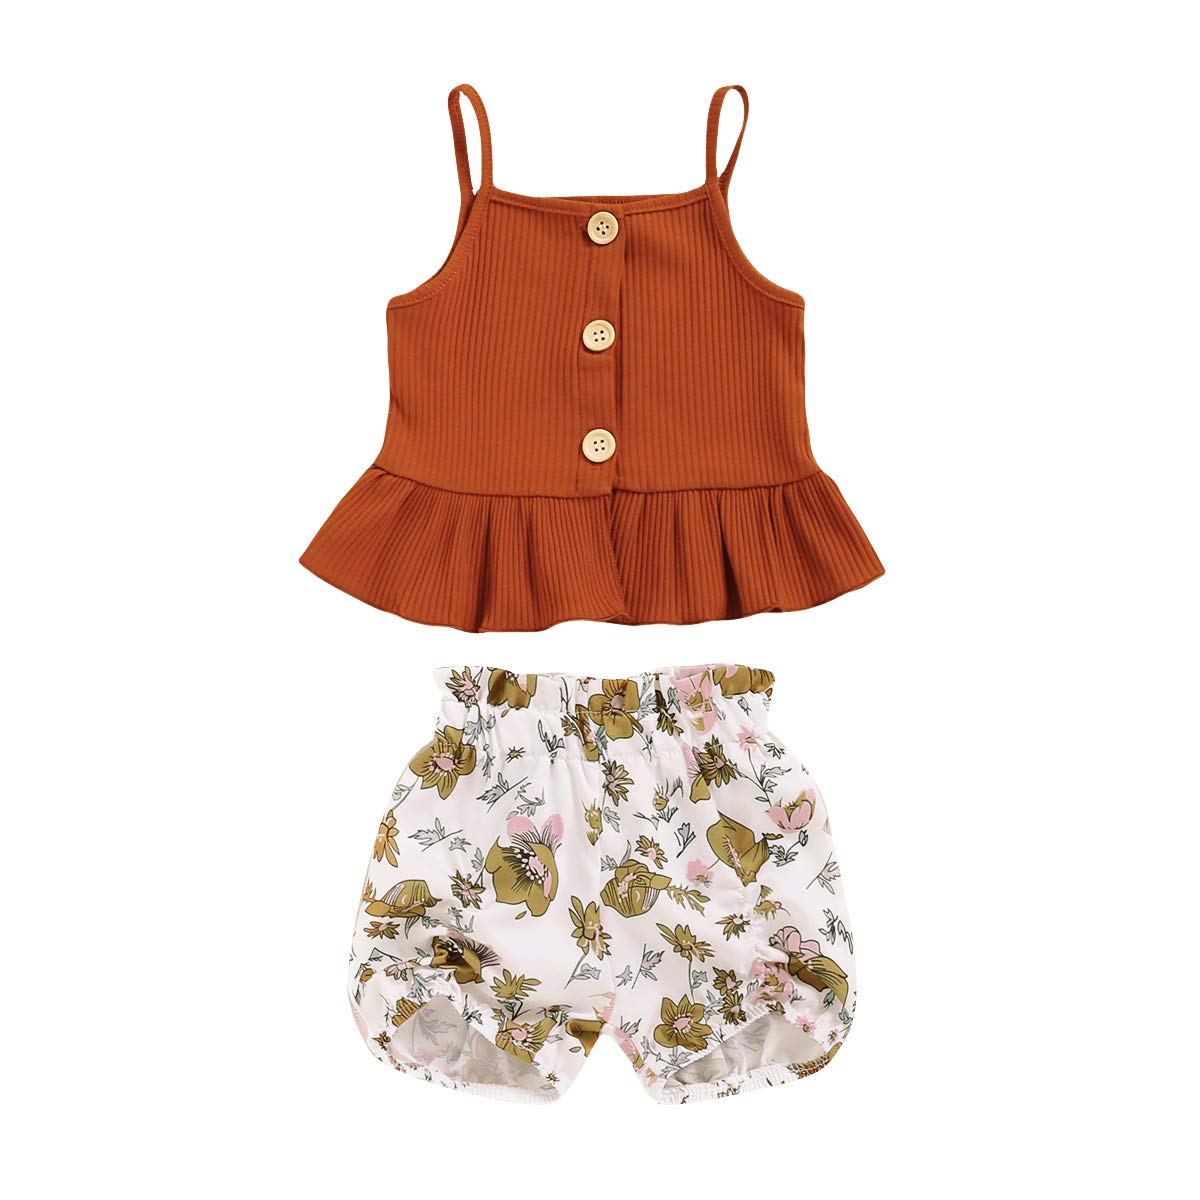 Toddler Girl Floral Top + Shorts 2PCS Outfits Clothing Set for Gilrs 1-4T